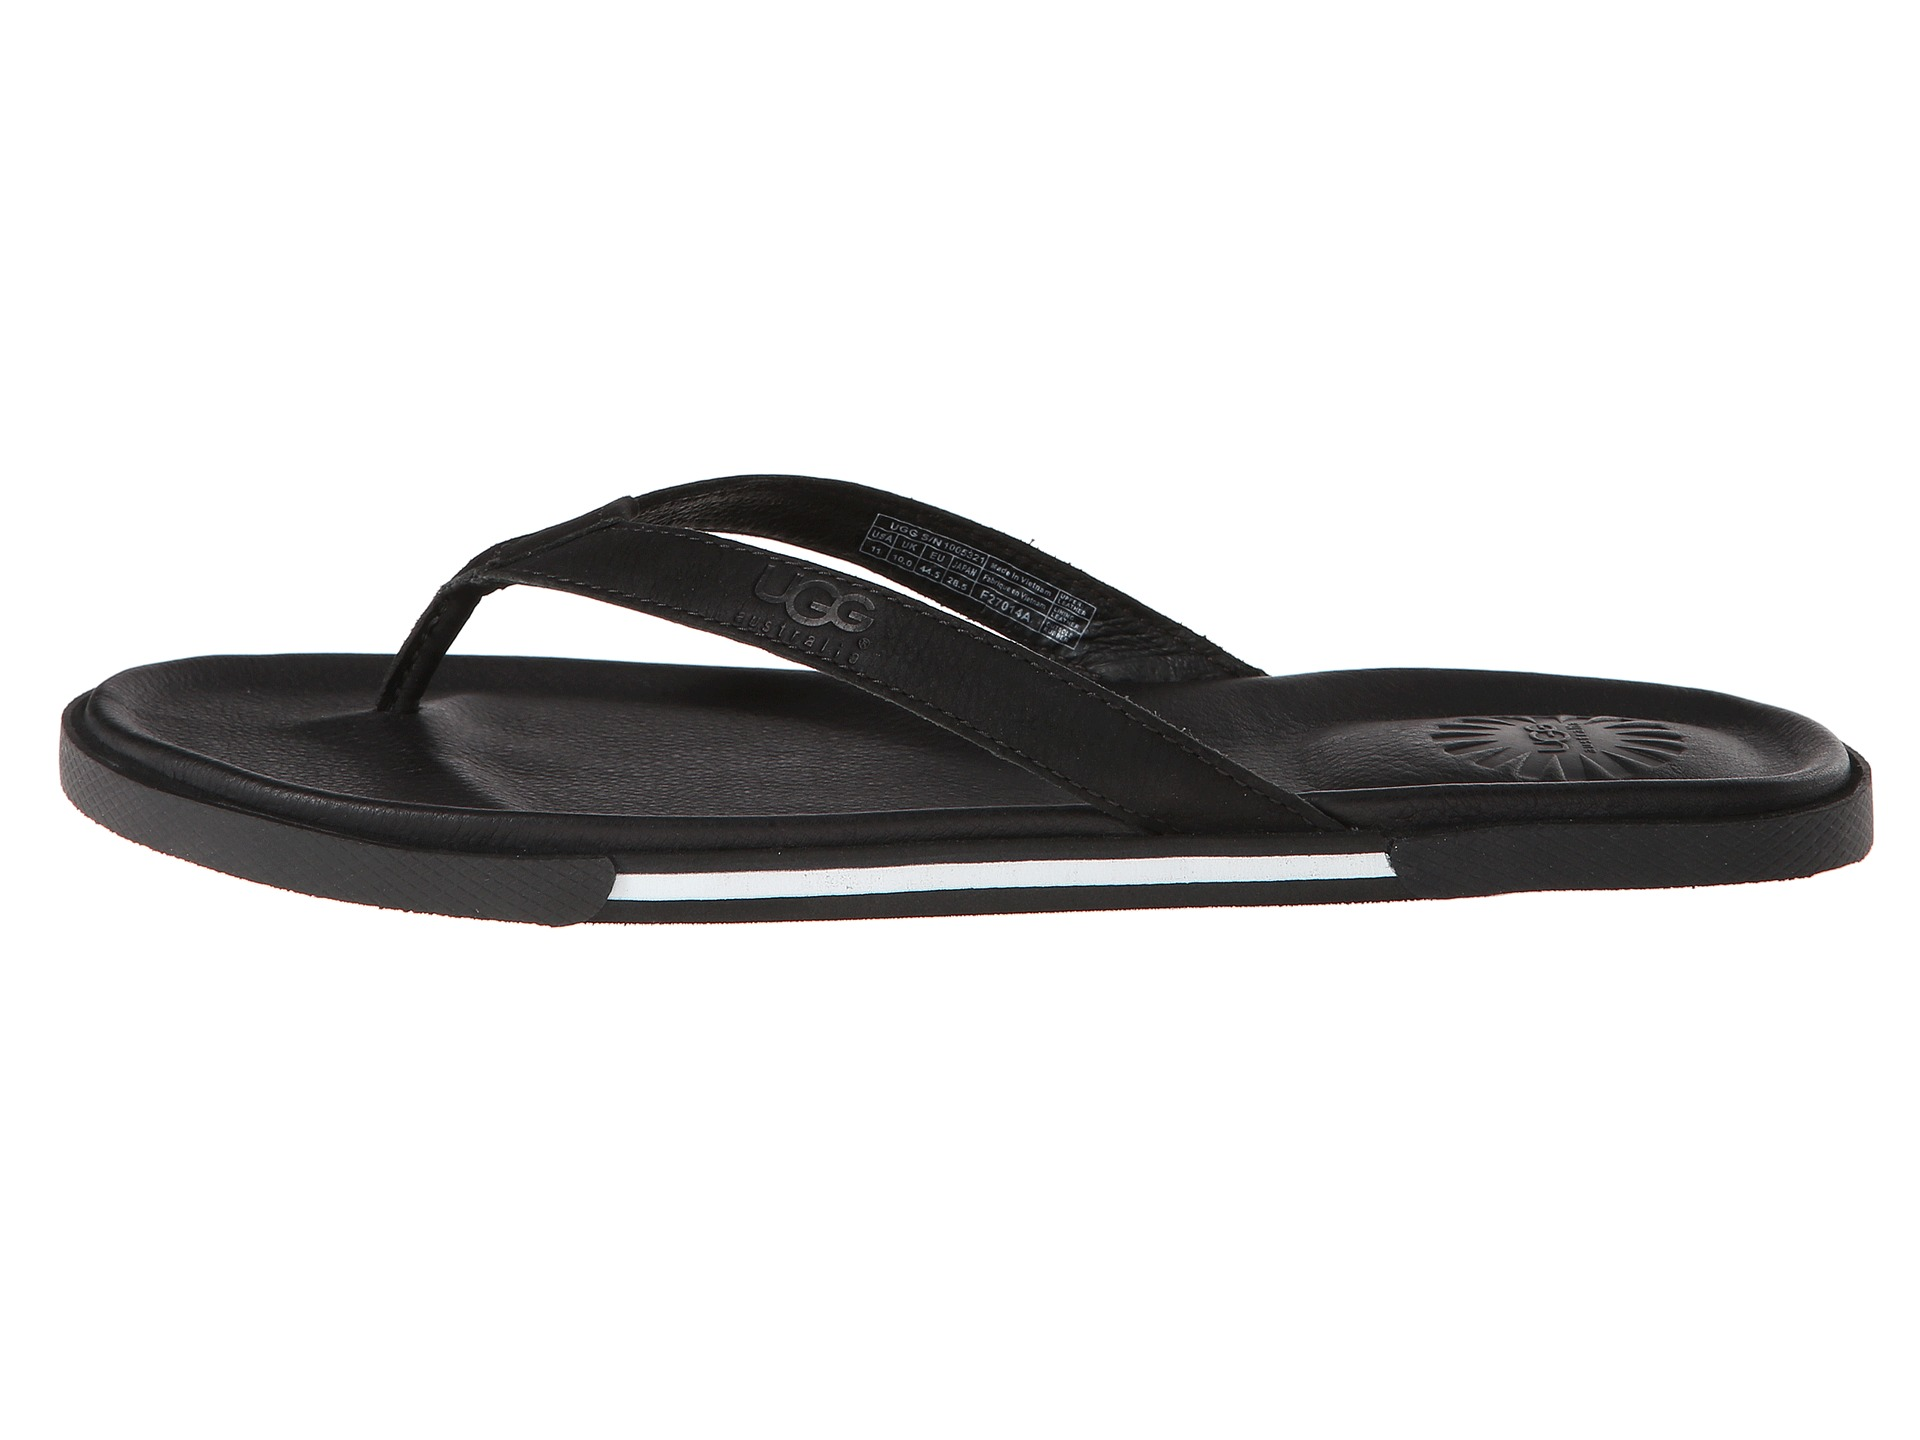 a7469914b4cb Ugg Bennison Flip Flop Reviews